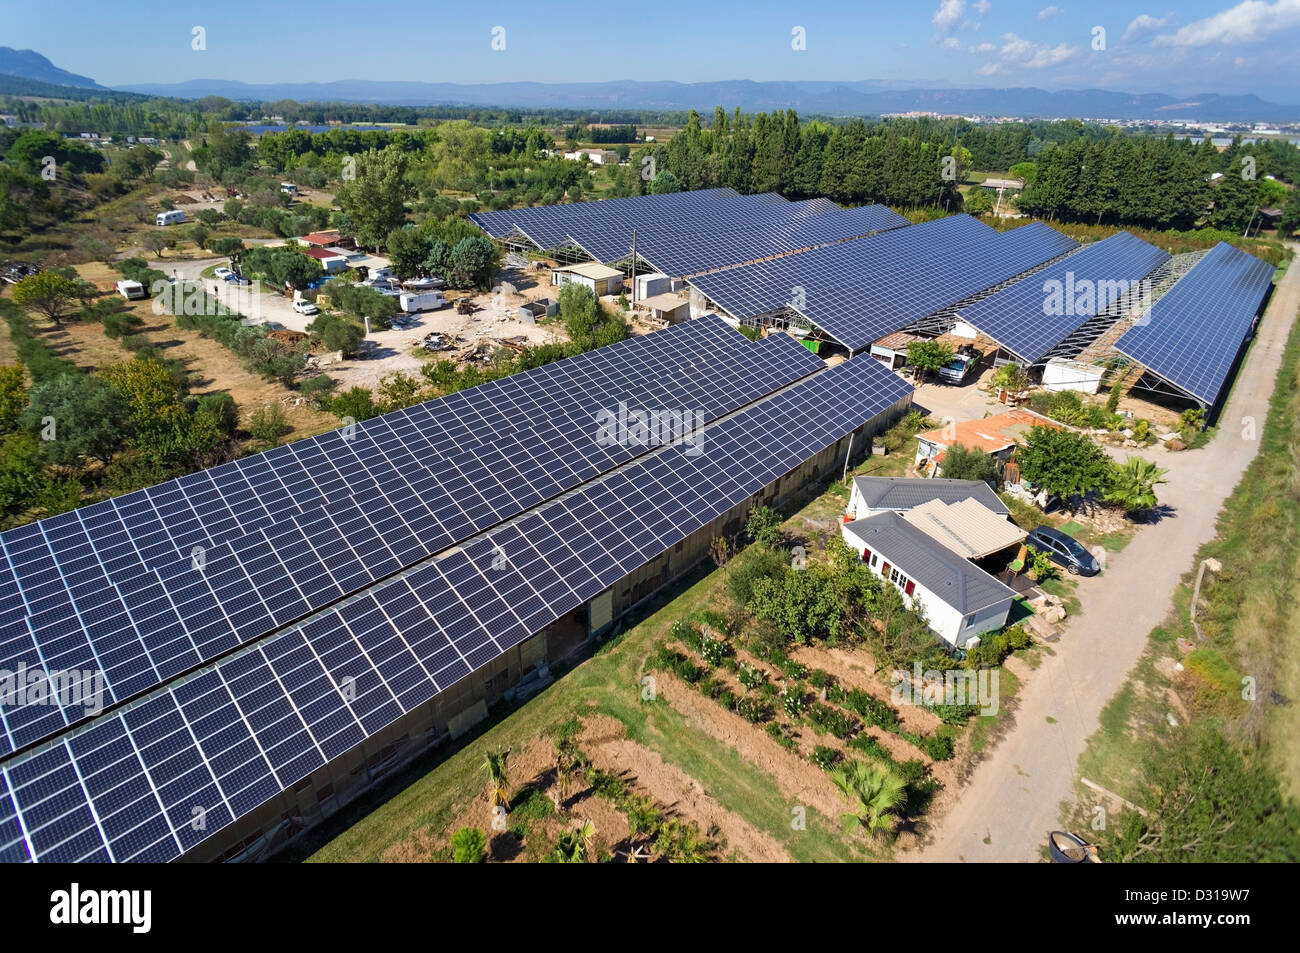 Solar Panels On Commercial Greenhouses For Food Production Aerial Stock Photo Alamy